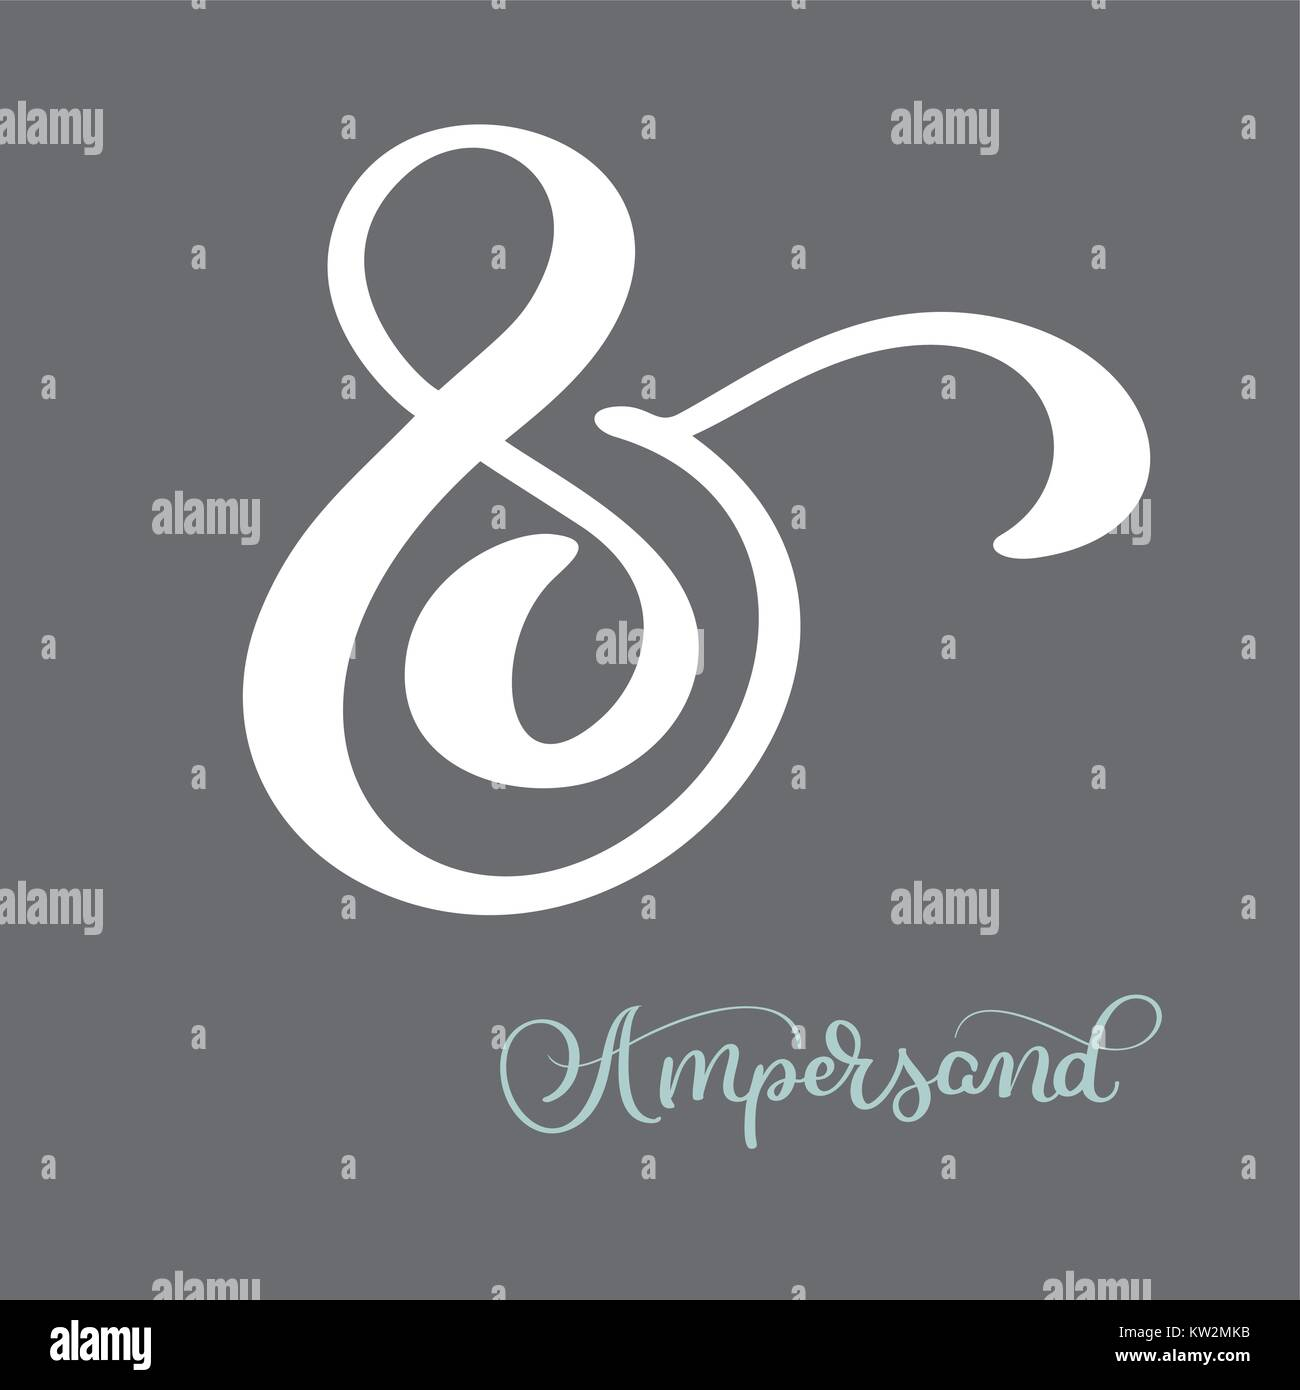 Vector Set Vintage Sign Ampersand Stock Photos Vector Set Vintage